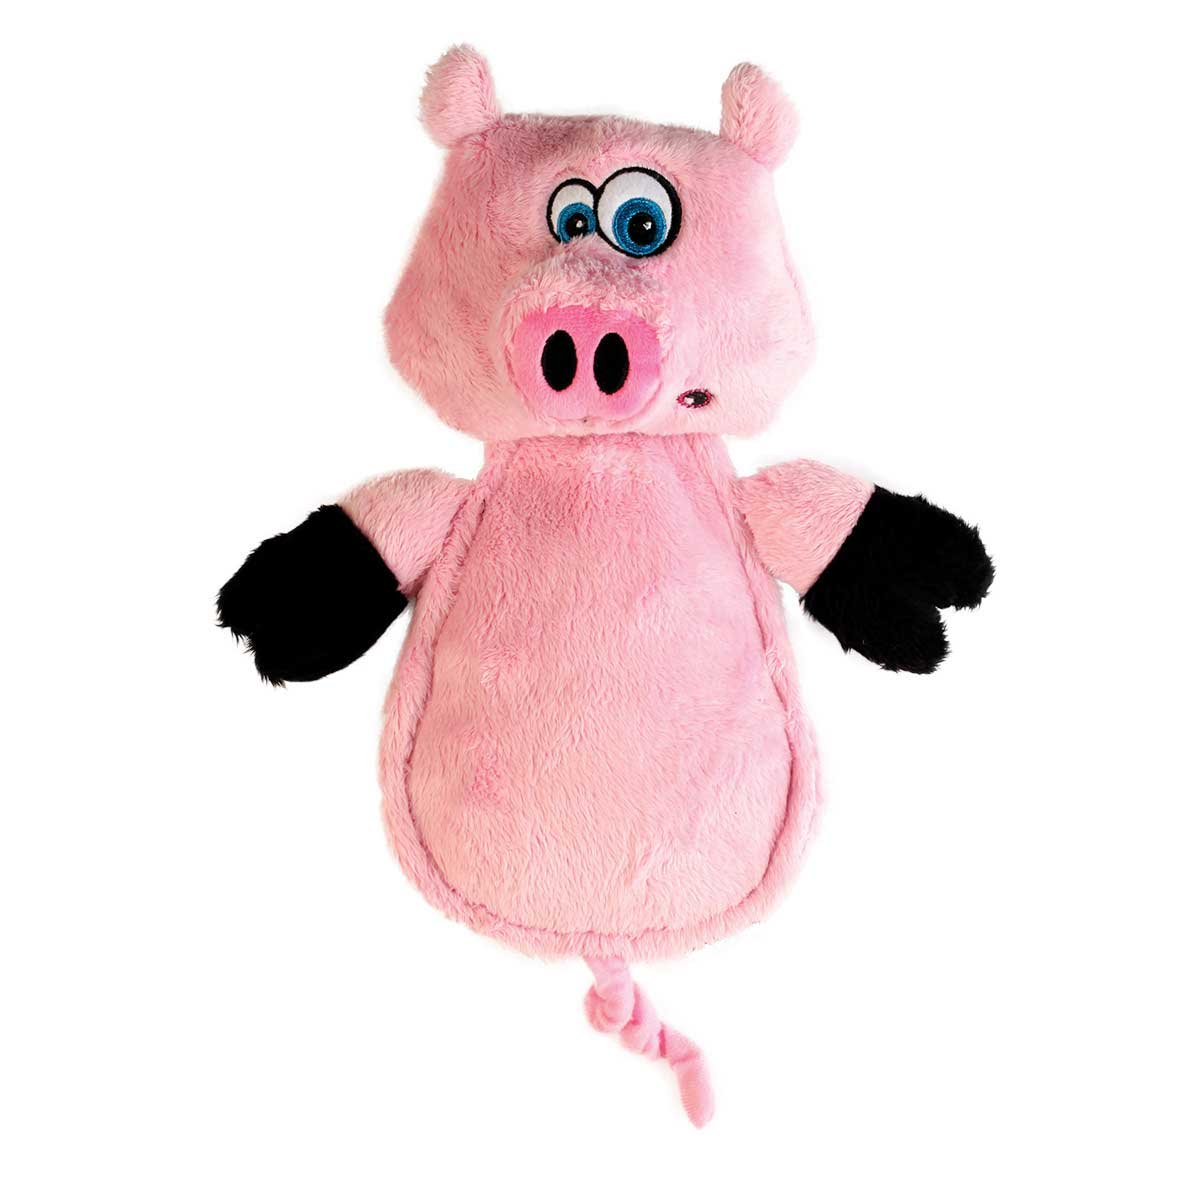 Hear Doggy Flat Pig 7 inch Stuffed Dog Toy with Chew Guard Technology